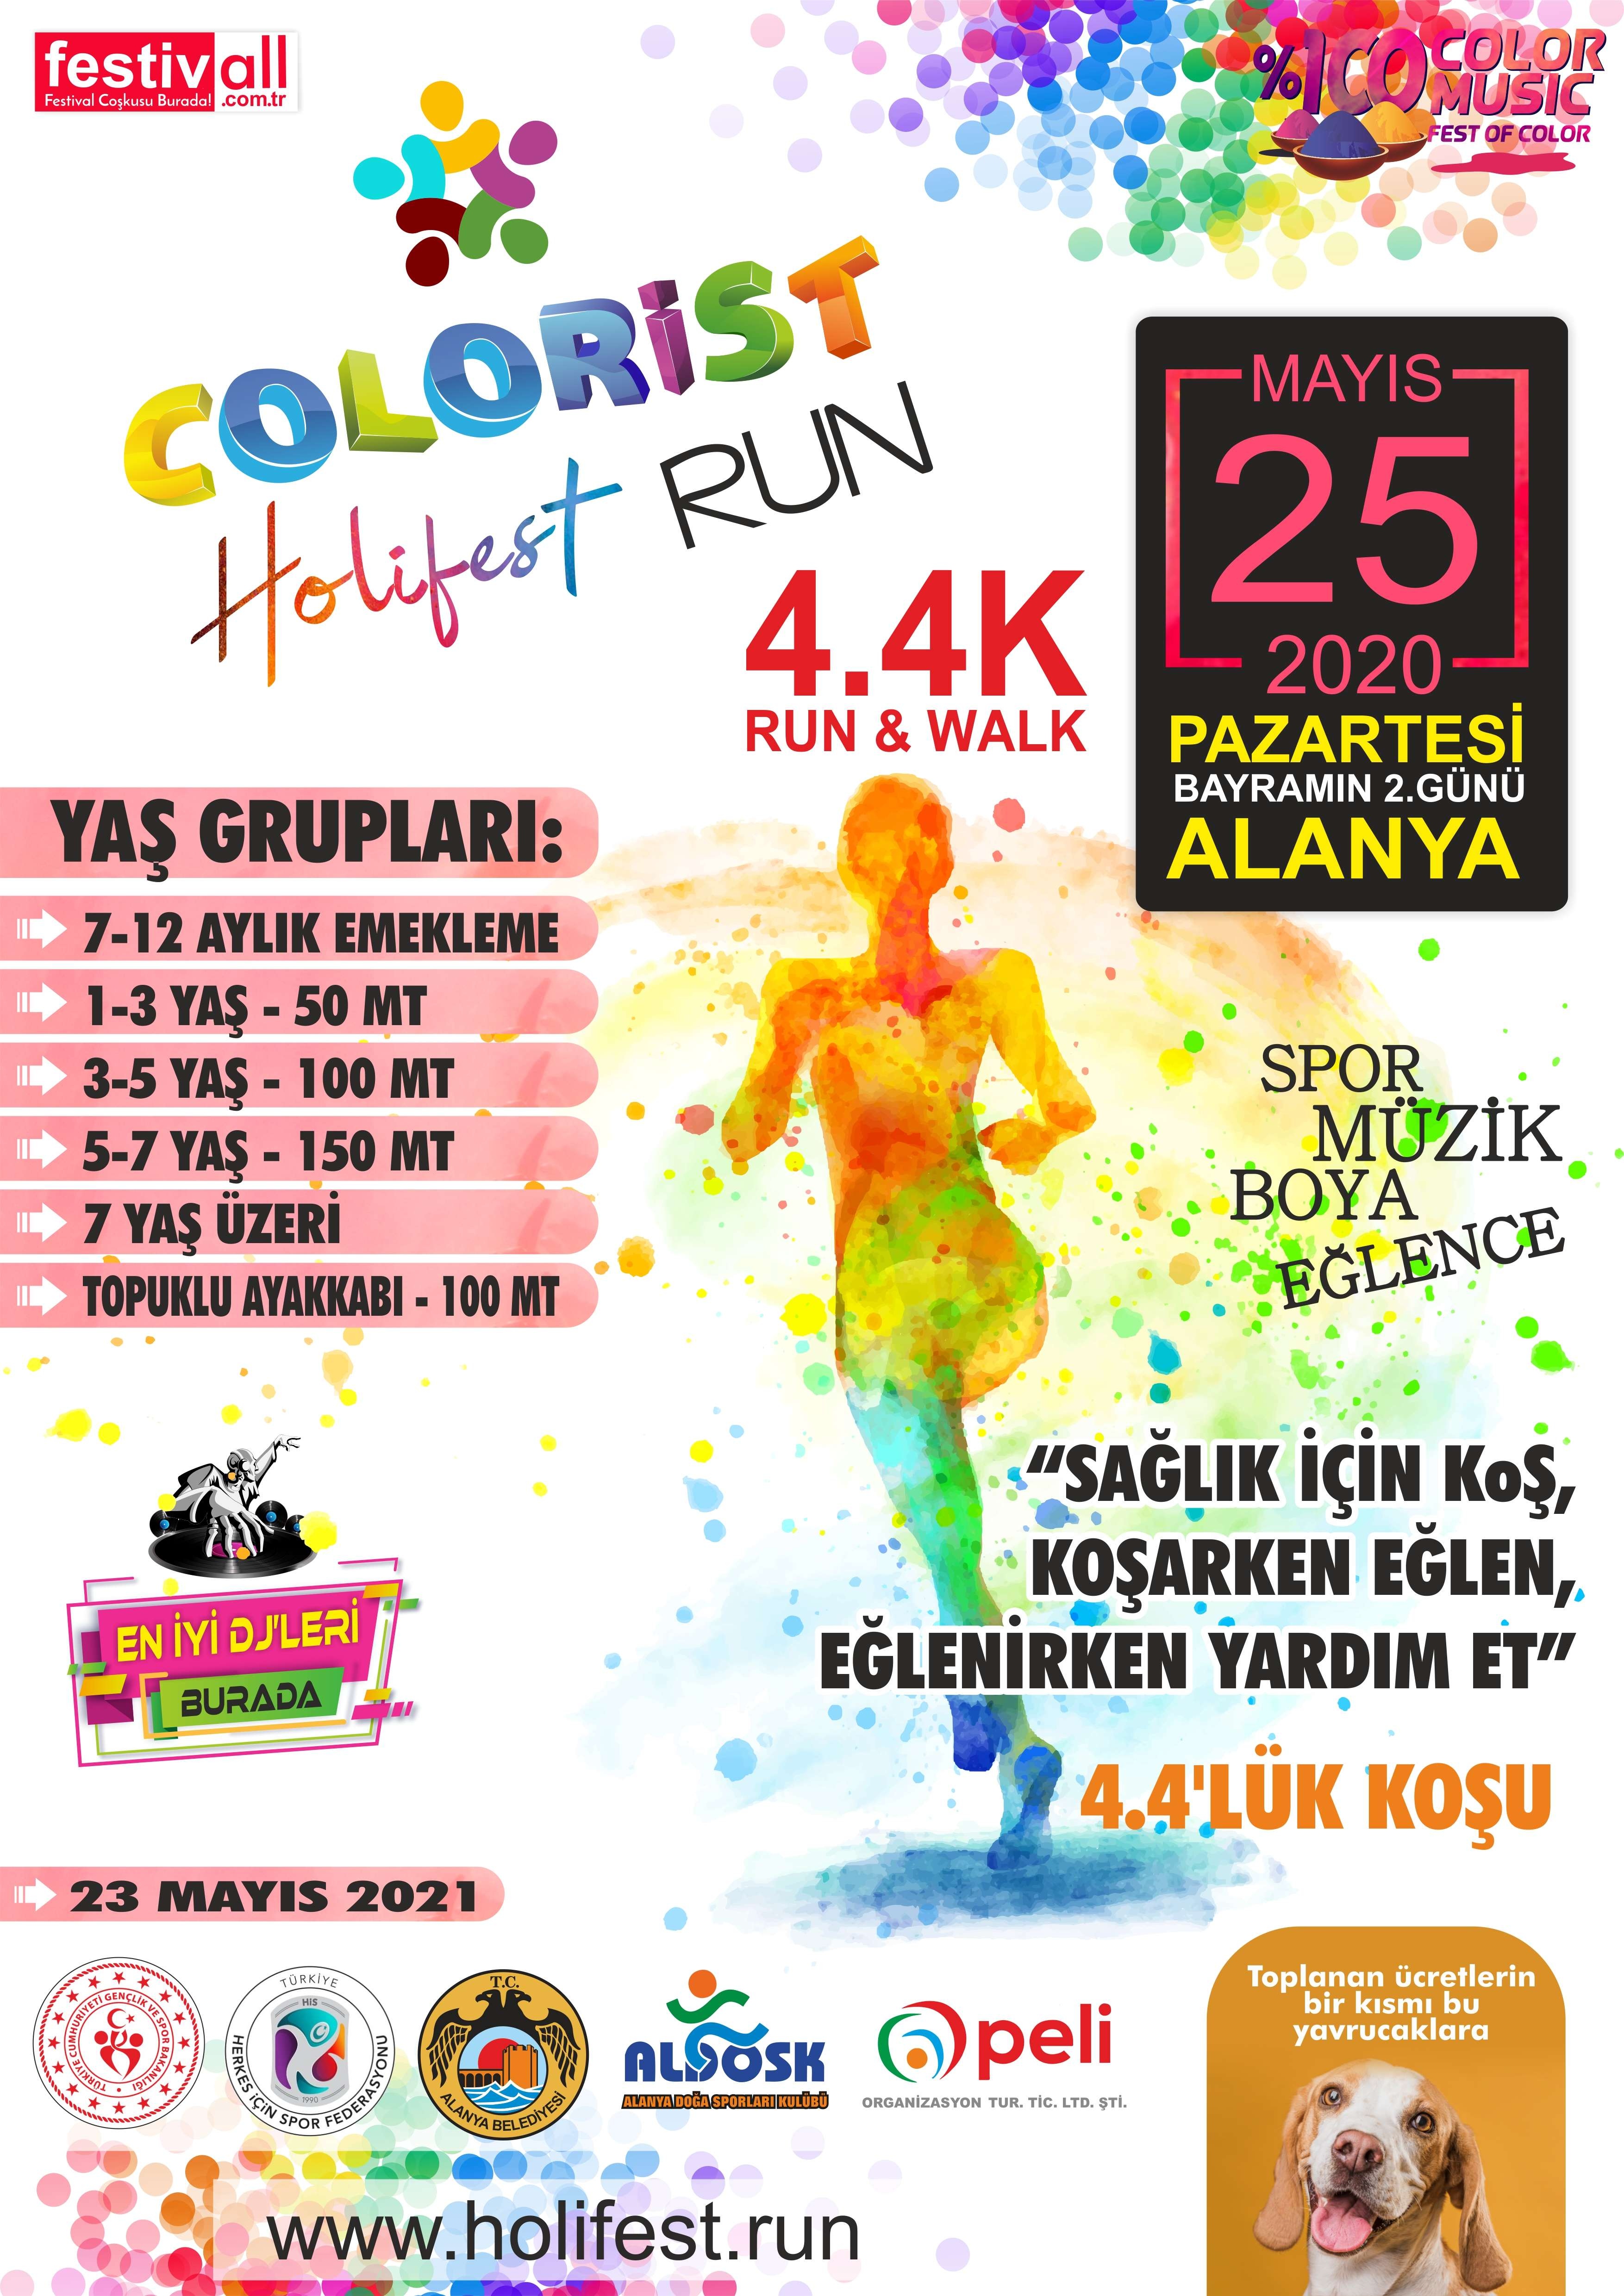 colorist-holifest-run-alanya-1888